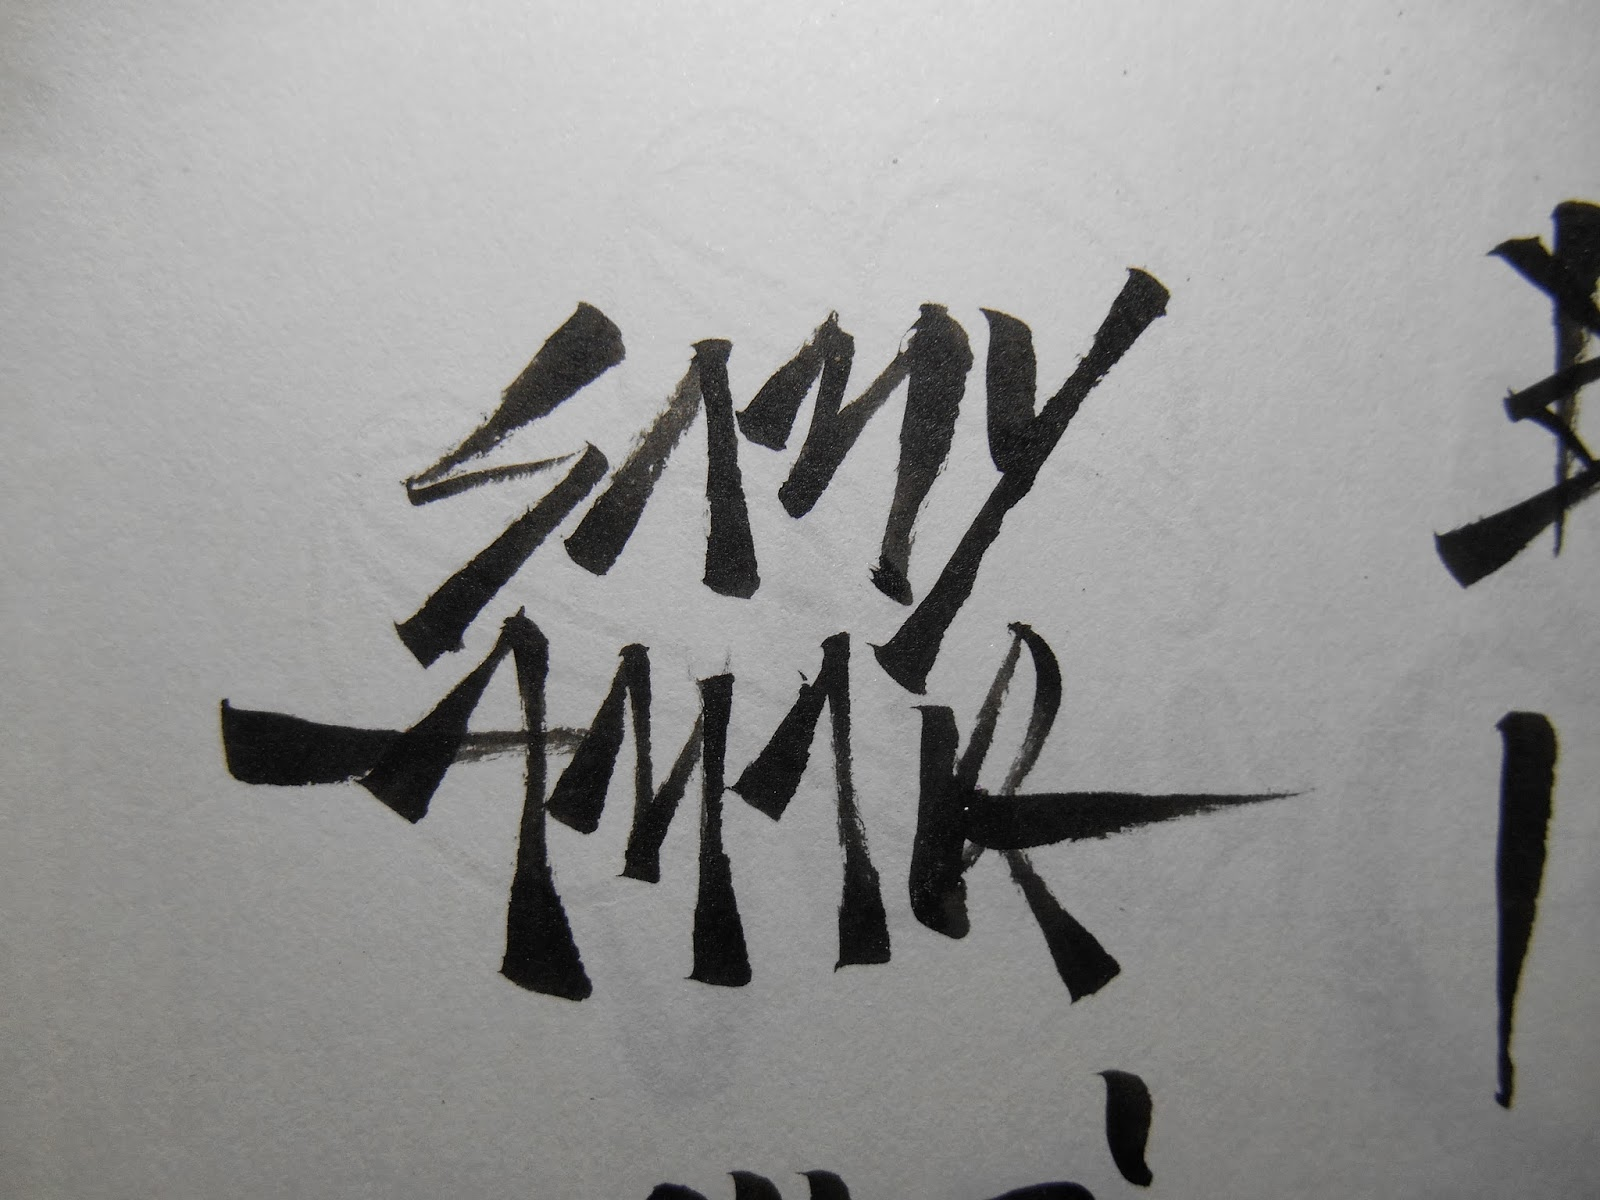 Samy amar calligraphy and lettering brush